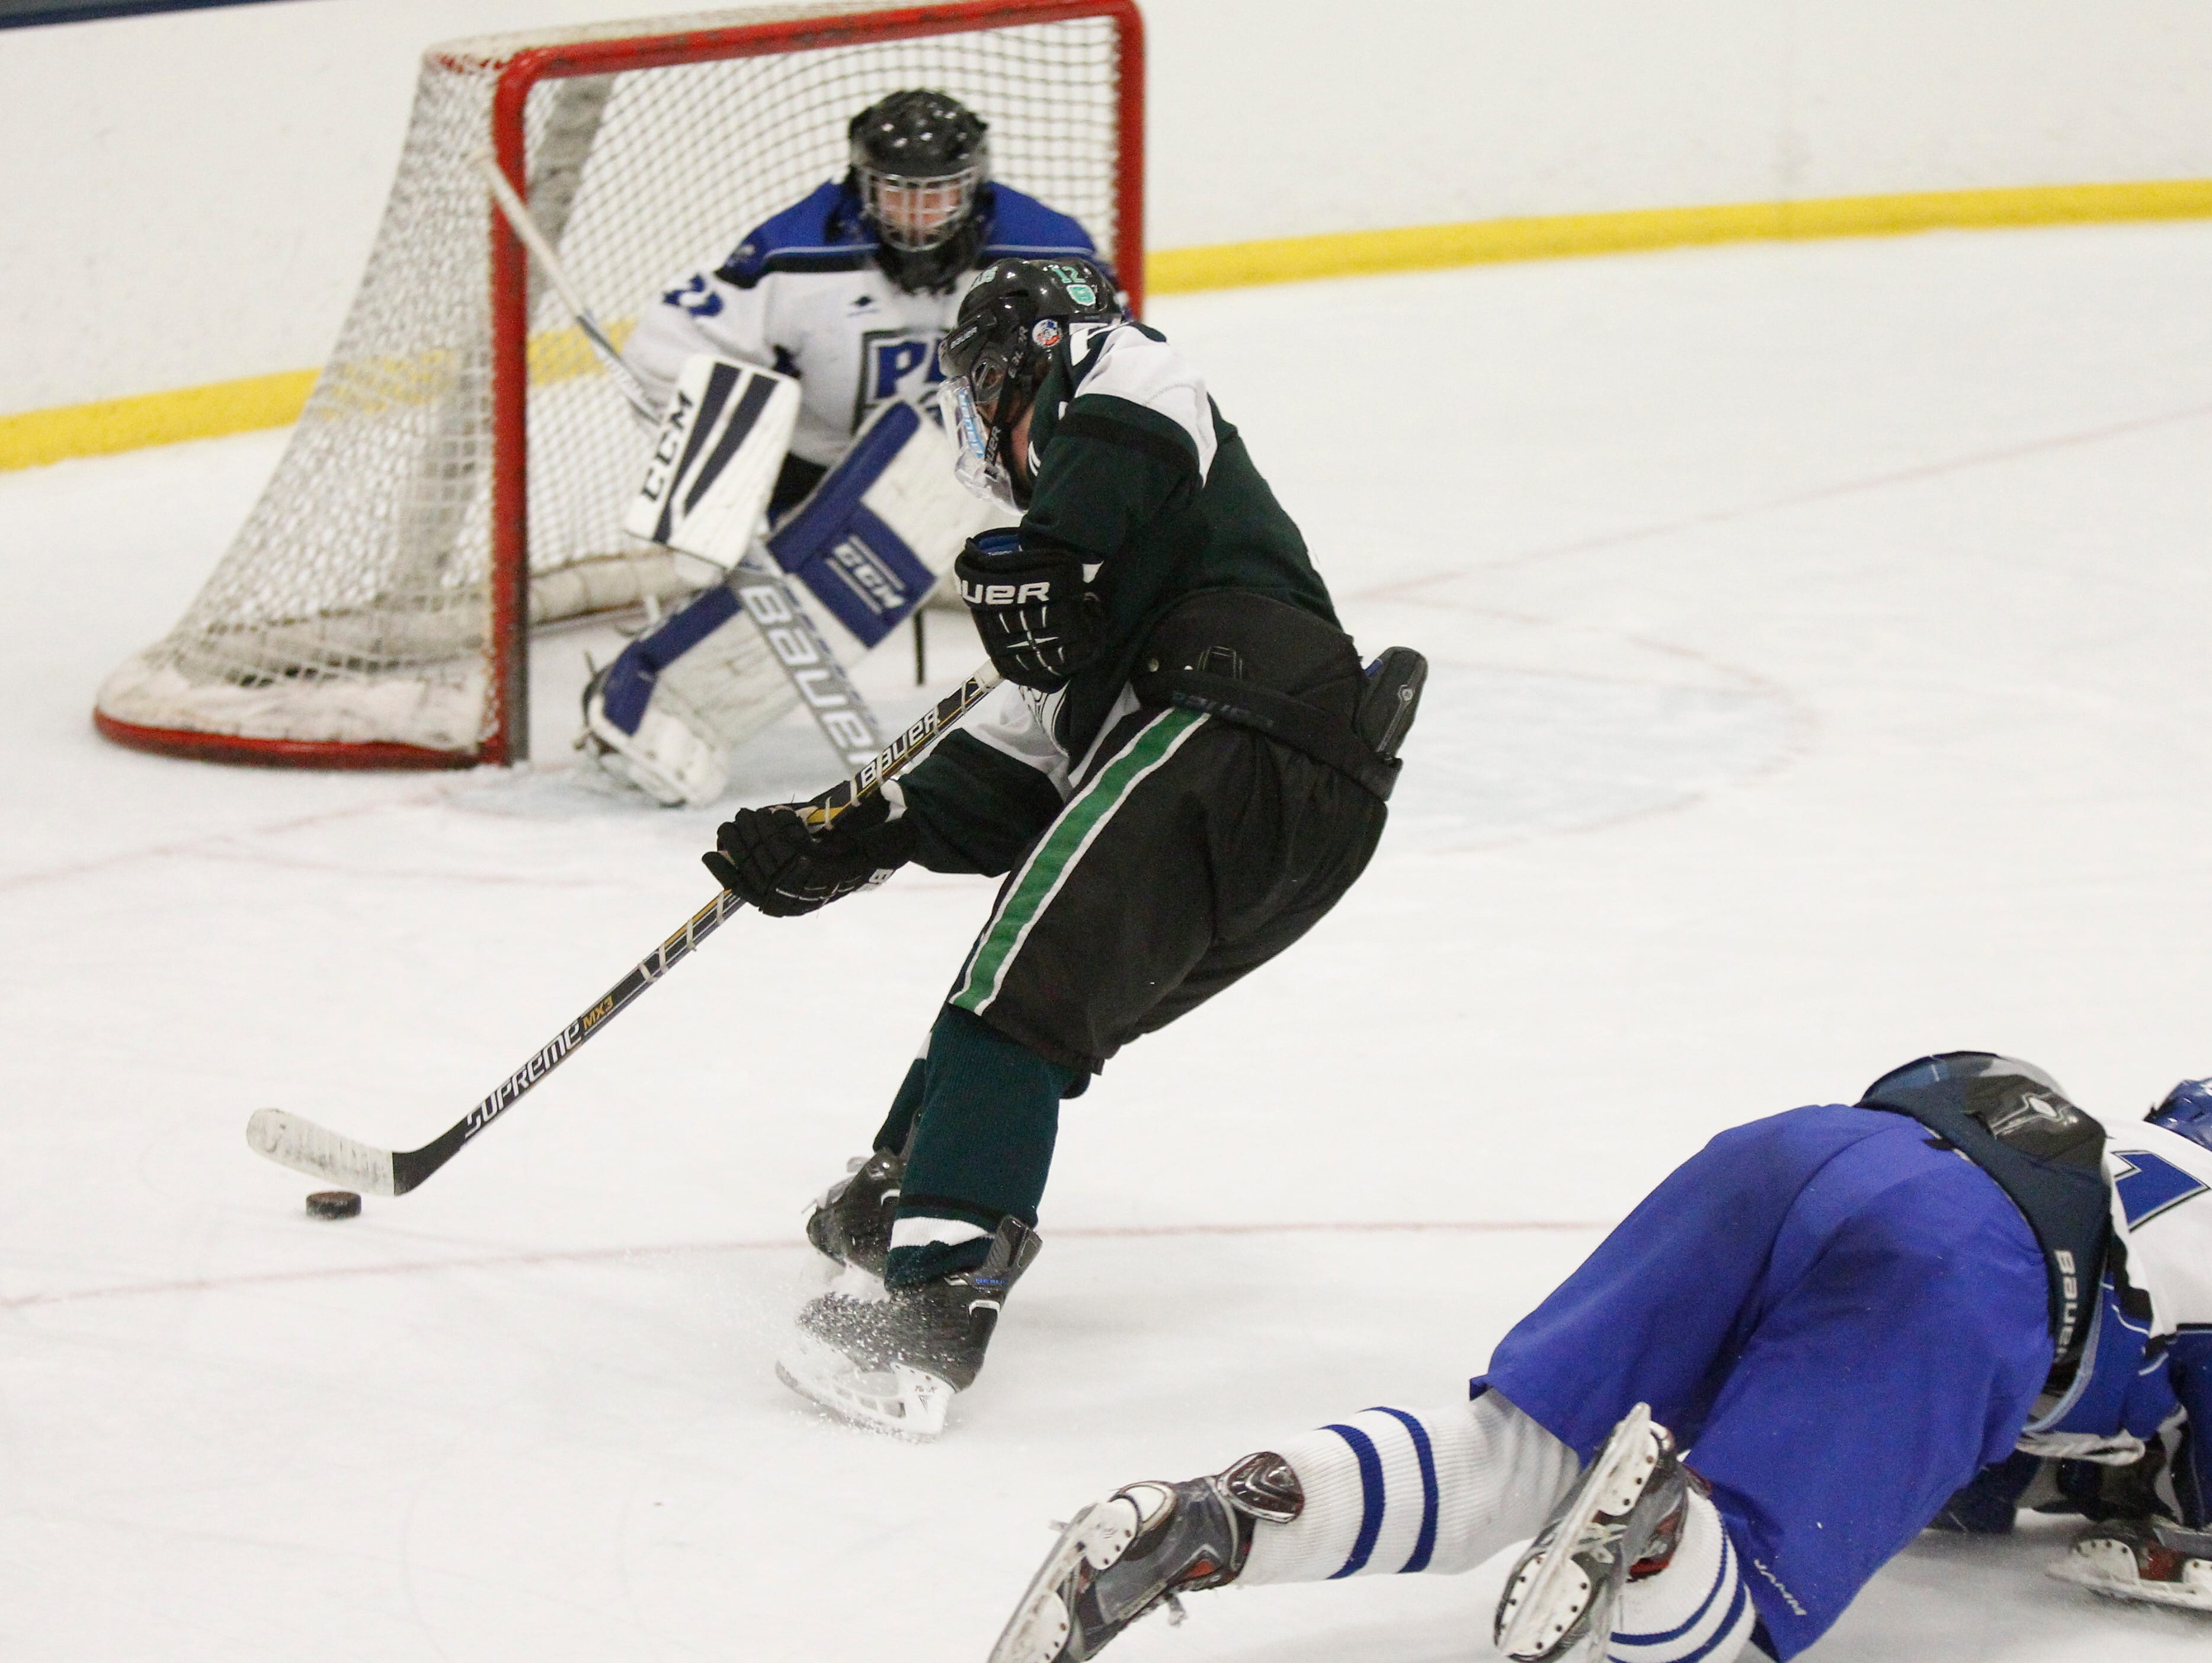 Brewster's Jason McNamara (12) puts a backhand shot on Pearl River goalie Darragh Keetley (32) during their 4-4 overtime tie game at Sport-O-Rama in Monsey on Saturday, Jan. 9, 2016.